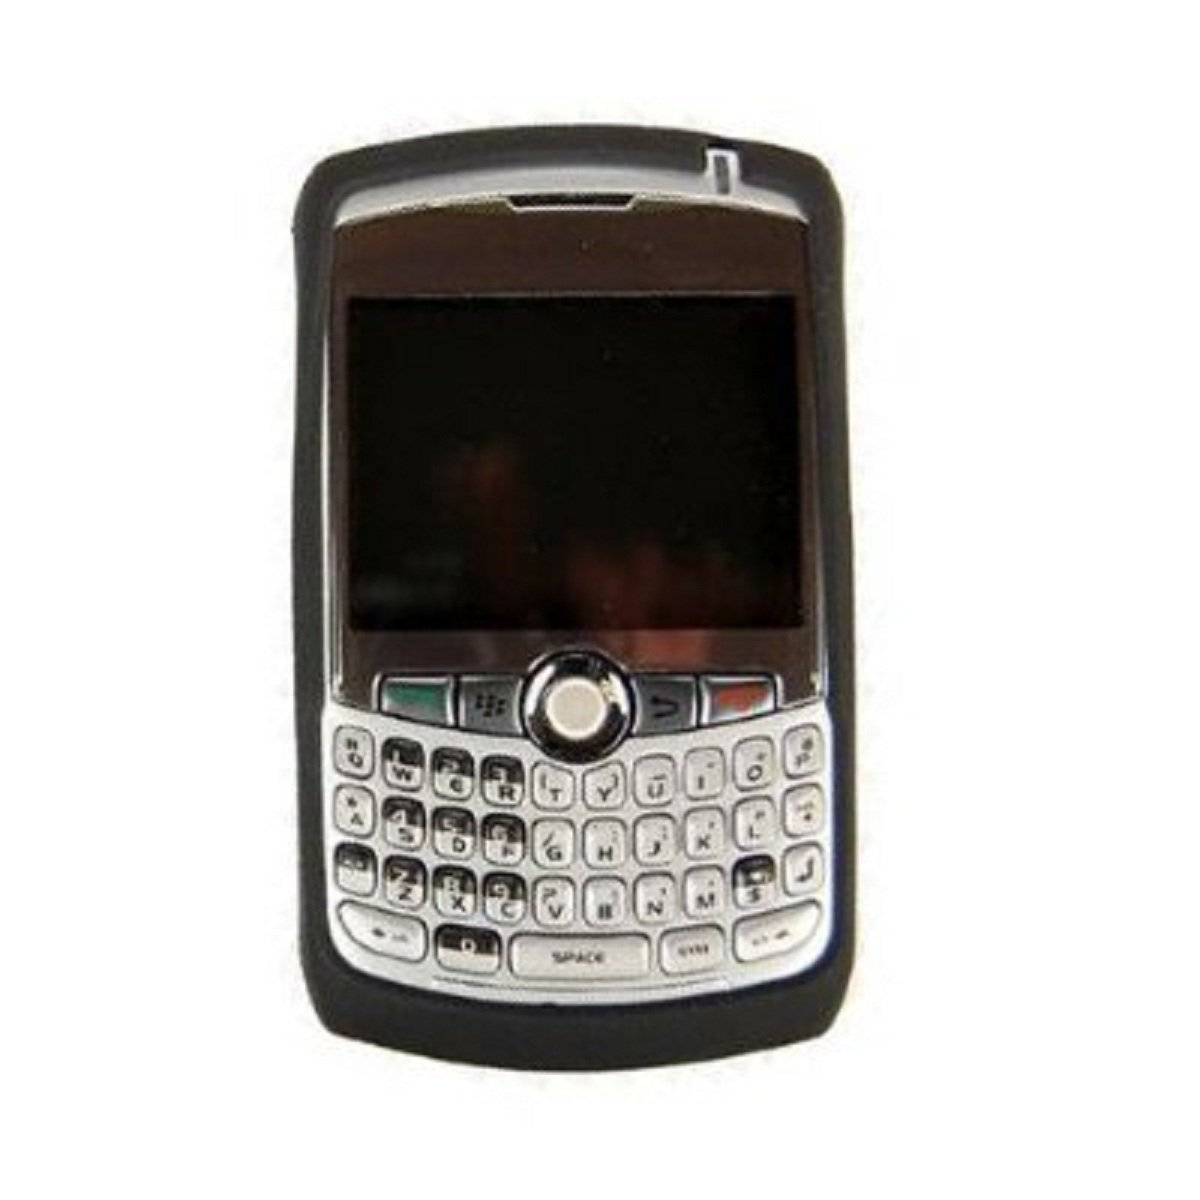 Black Silicone Snap On Cover for Blackberry Curve 8300 Phone New #D71